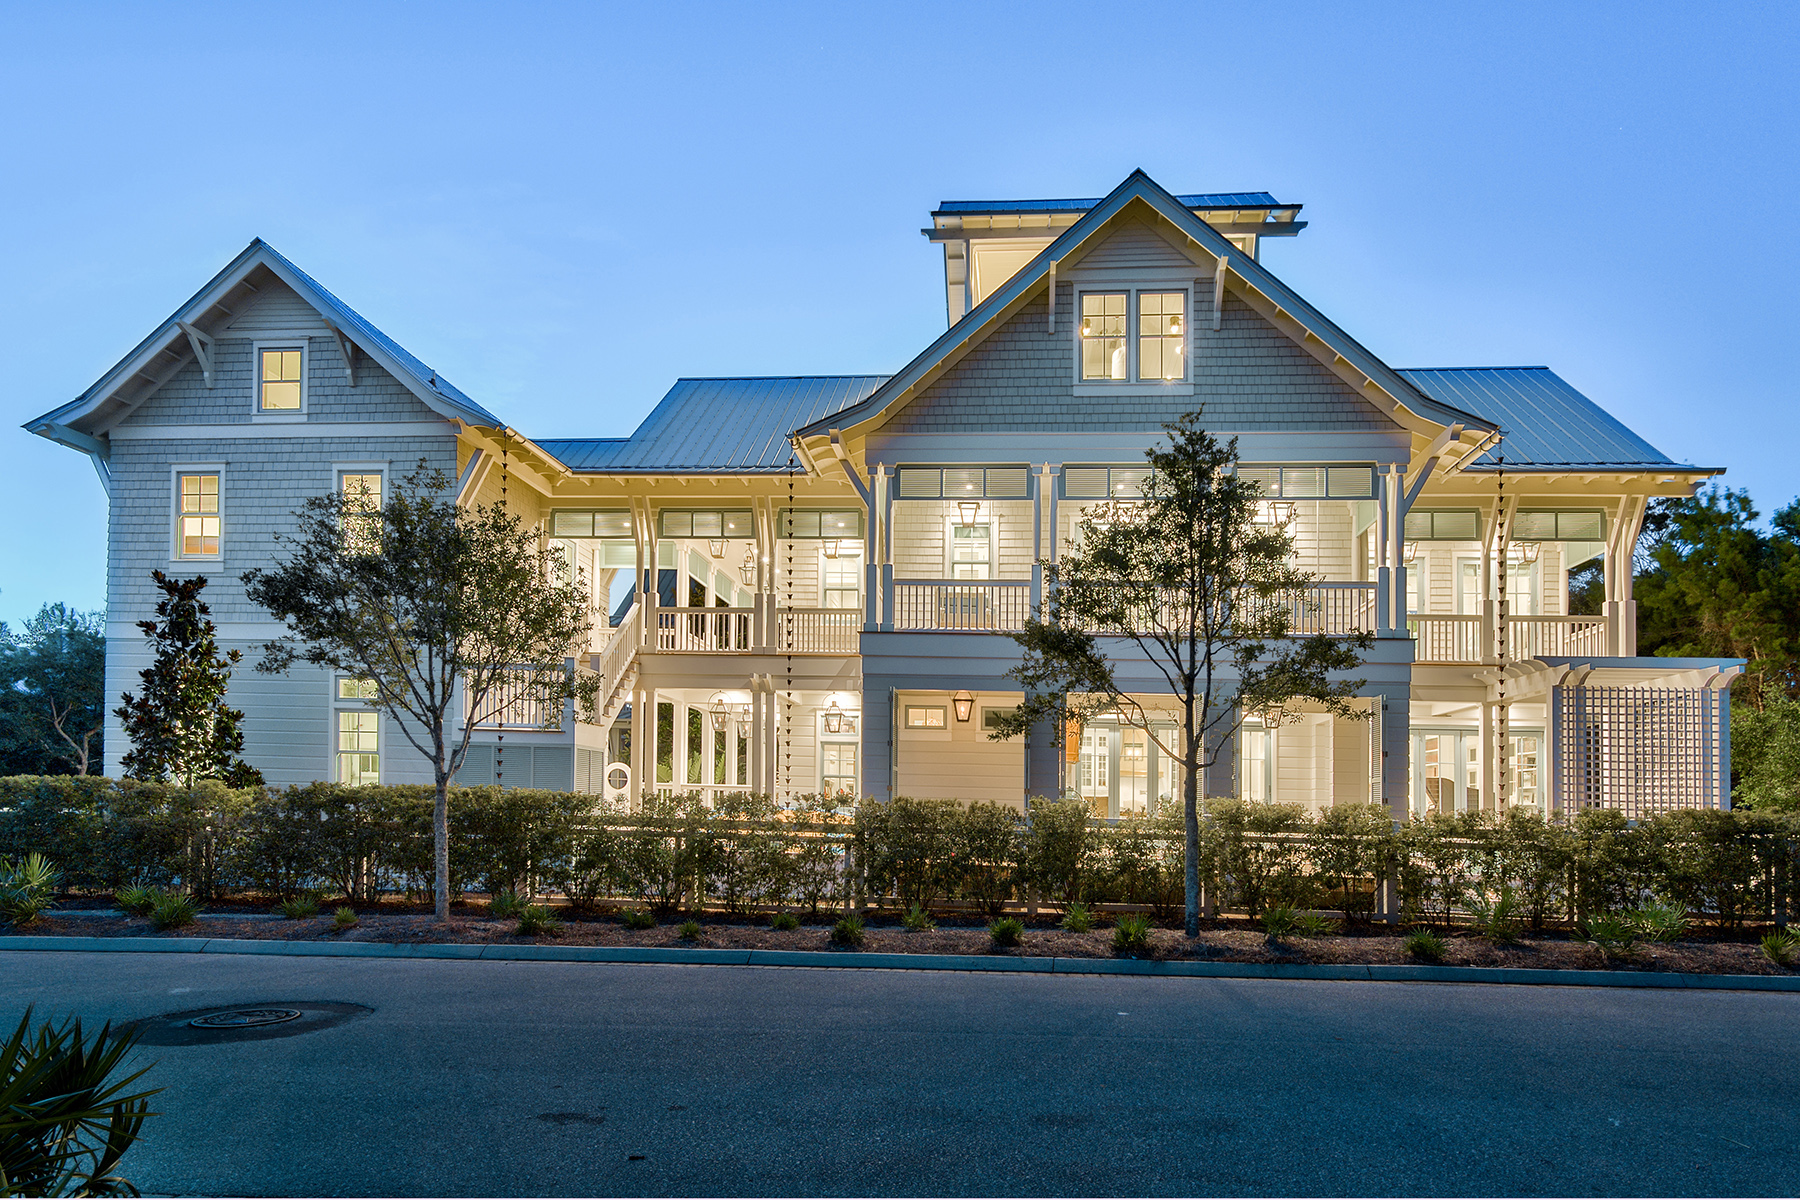 Single Family Home for Sale at IMPECCABLE DESIGN & FUNCTION FOR HIGH END LIVING & ENTERTAINING 10 Flatwood Street Watercolor, Santa Rosa Beach, Florida, 32459 United States